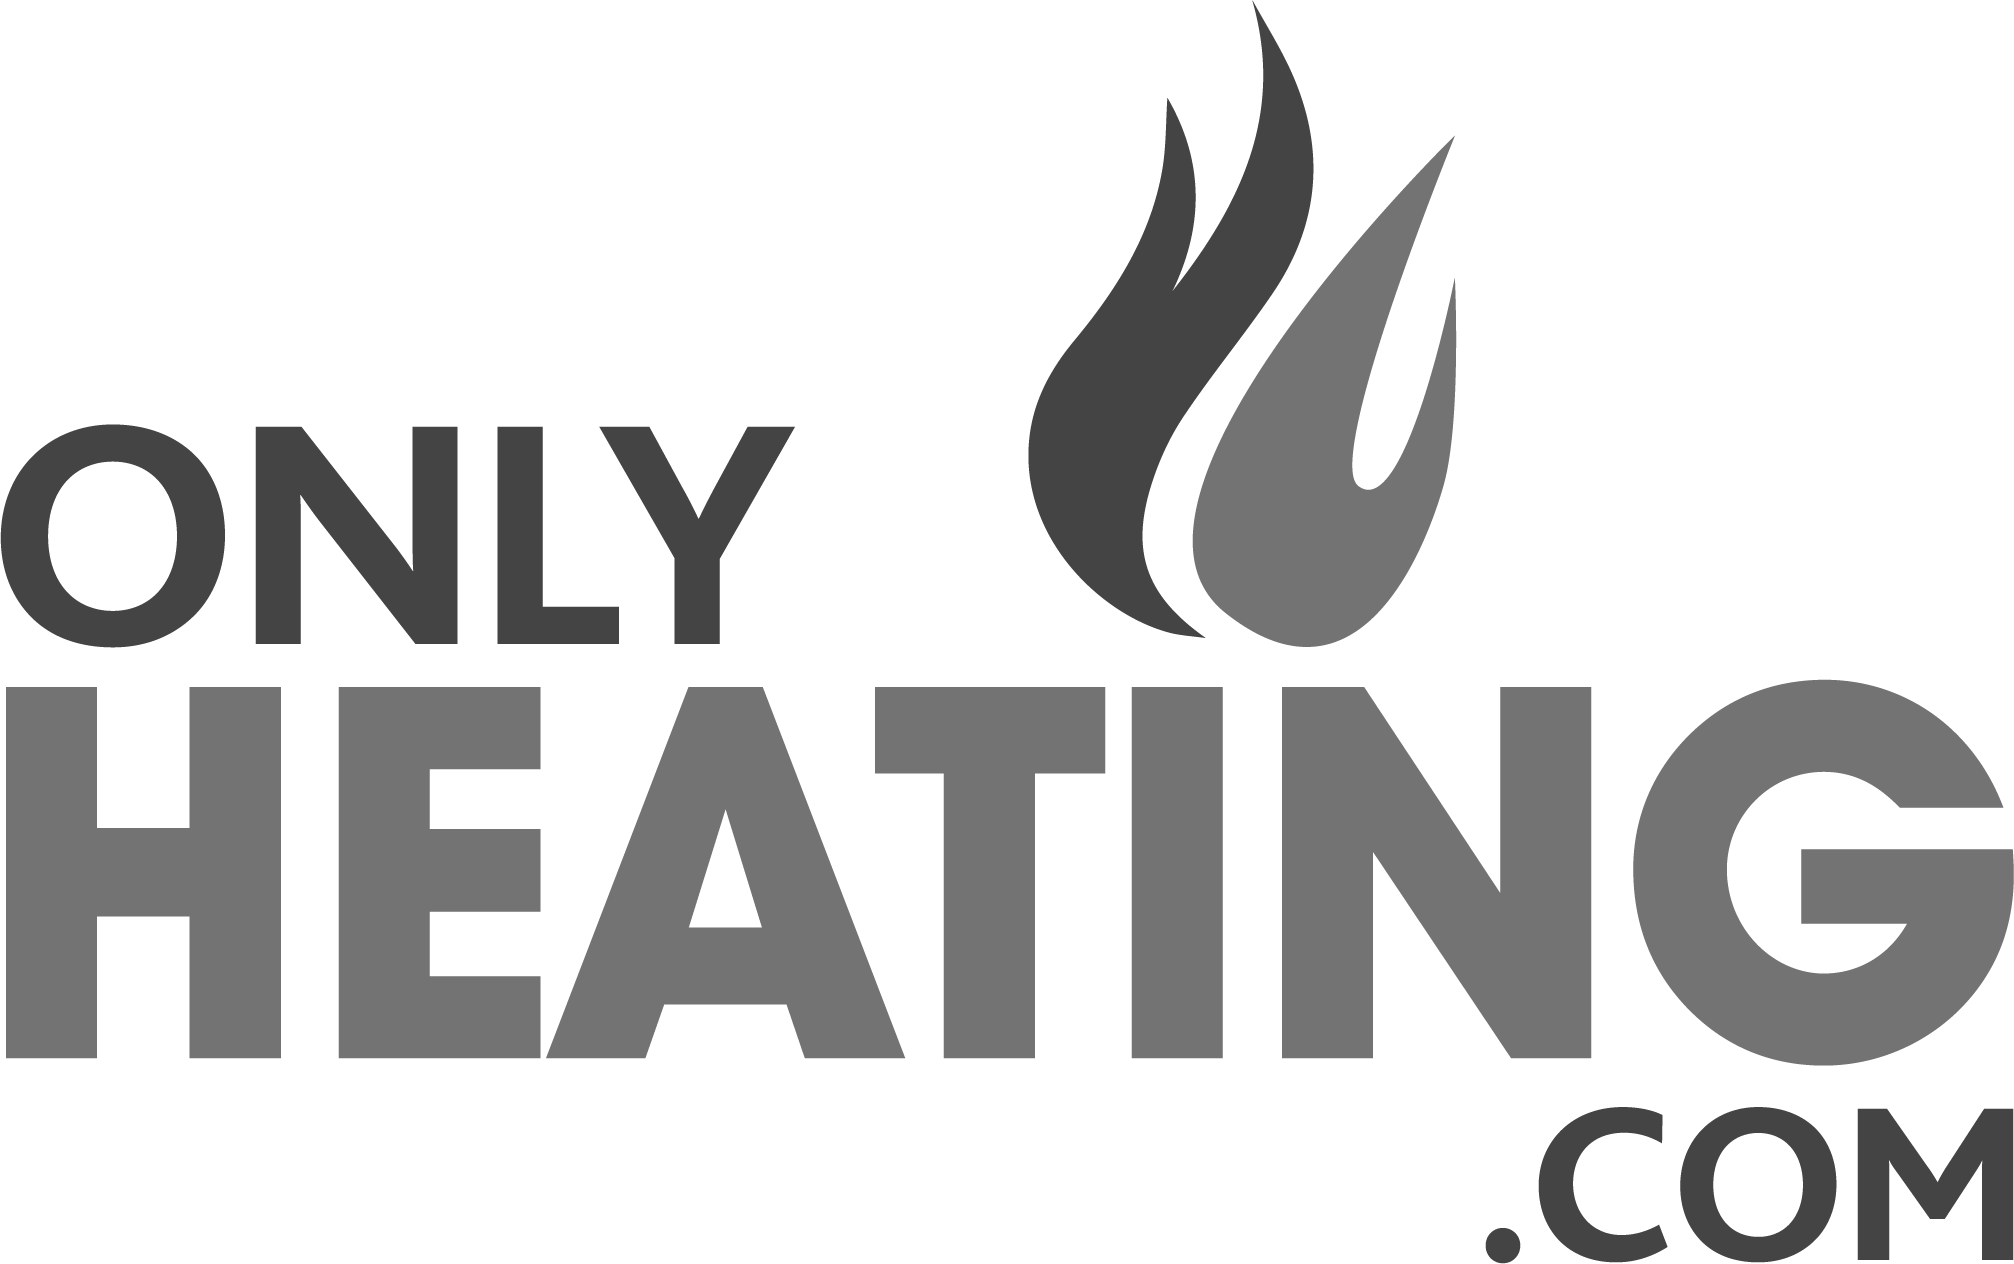 Only Heating